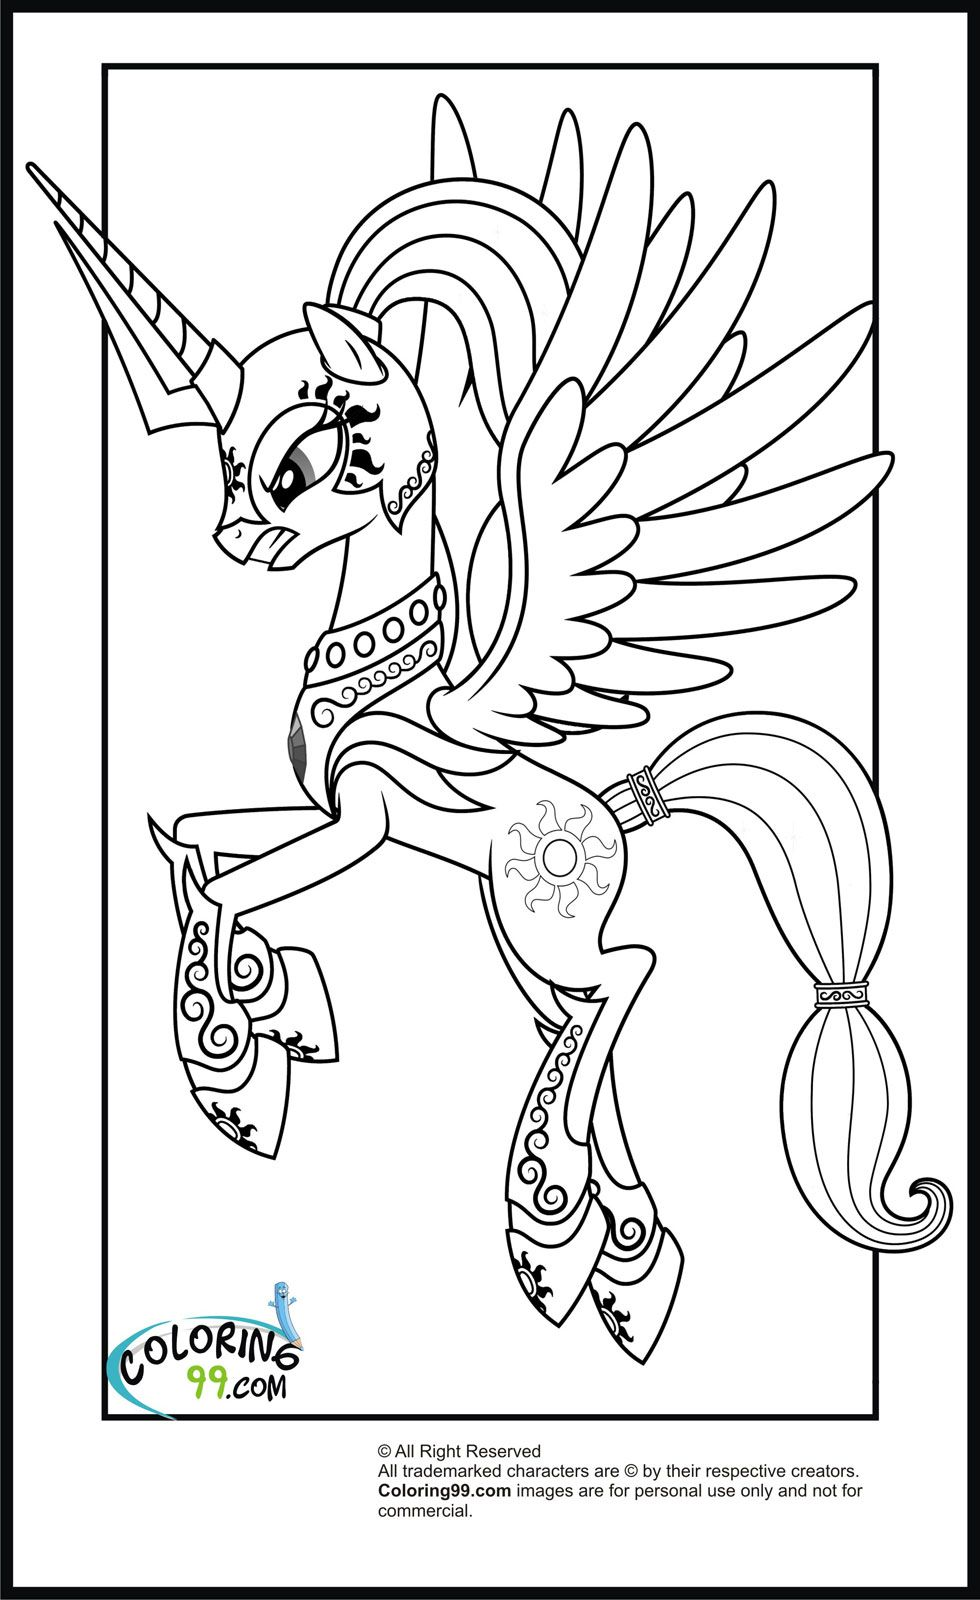 Little princess coloring pages - My Little Pony Coloring Pages My Little Pony Princess Celestia Coloring Pages